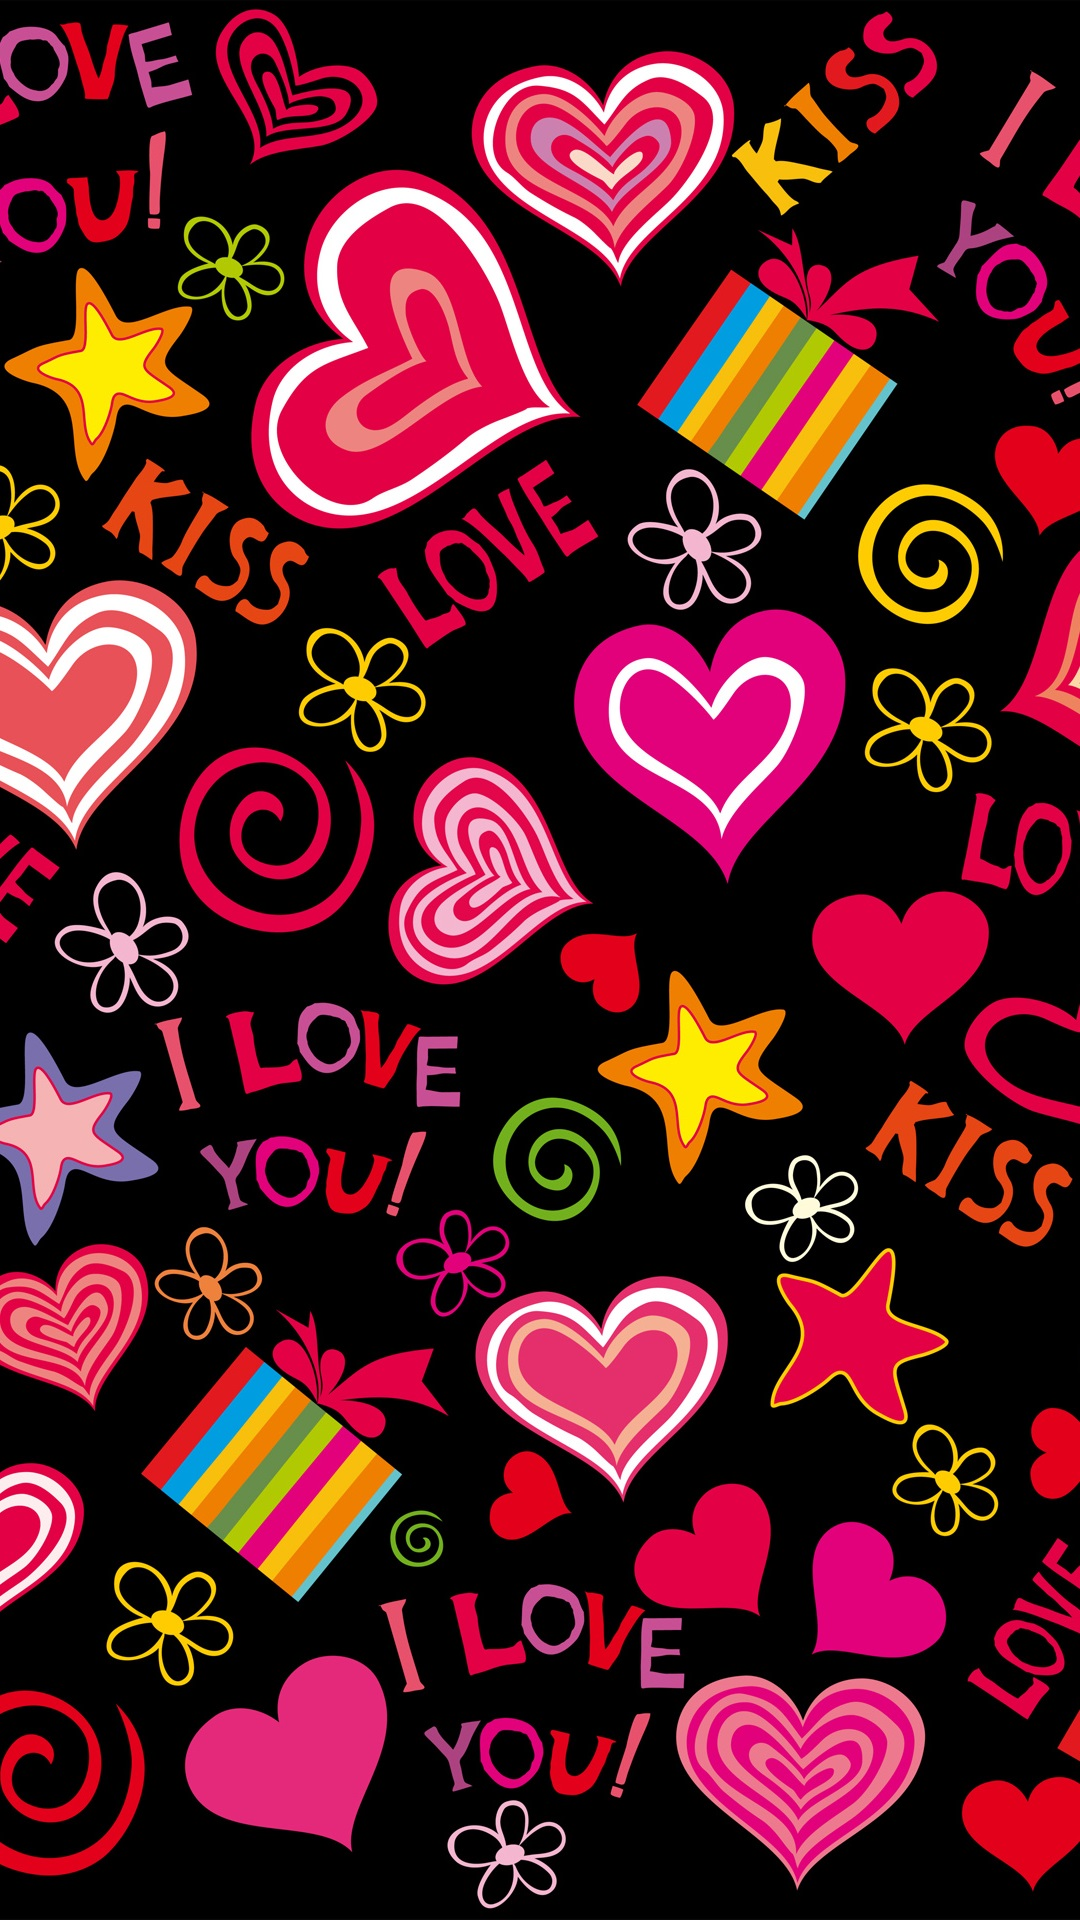 I Love You Wallpaper Iphone 5 : colorful love hearts, sweet, vector, romantic iPhone ...